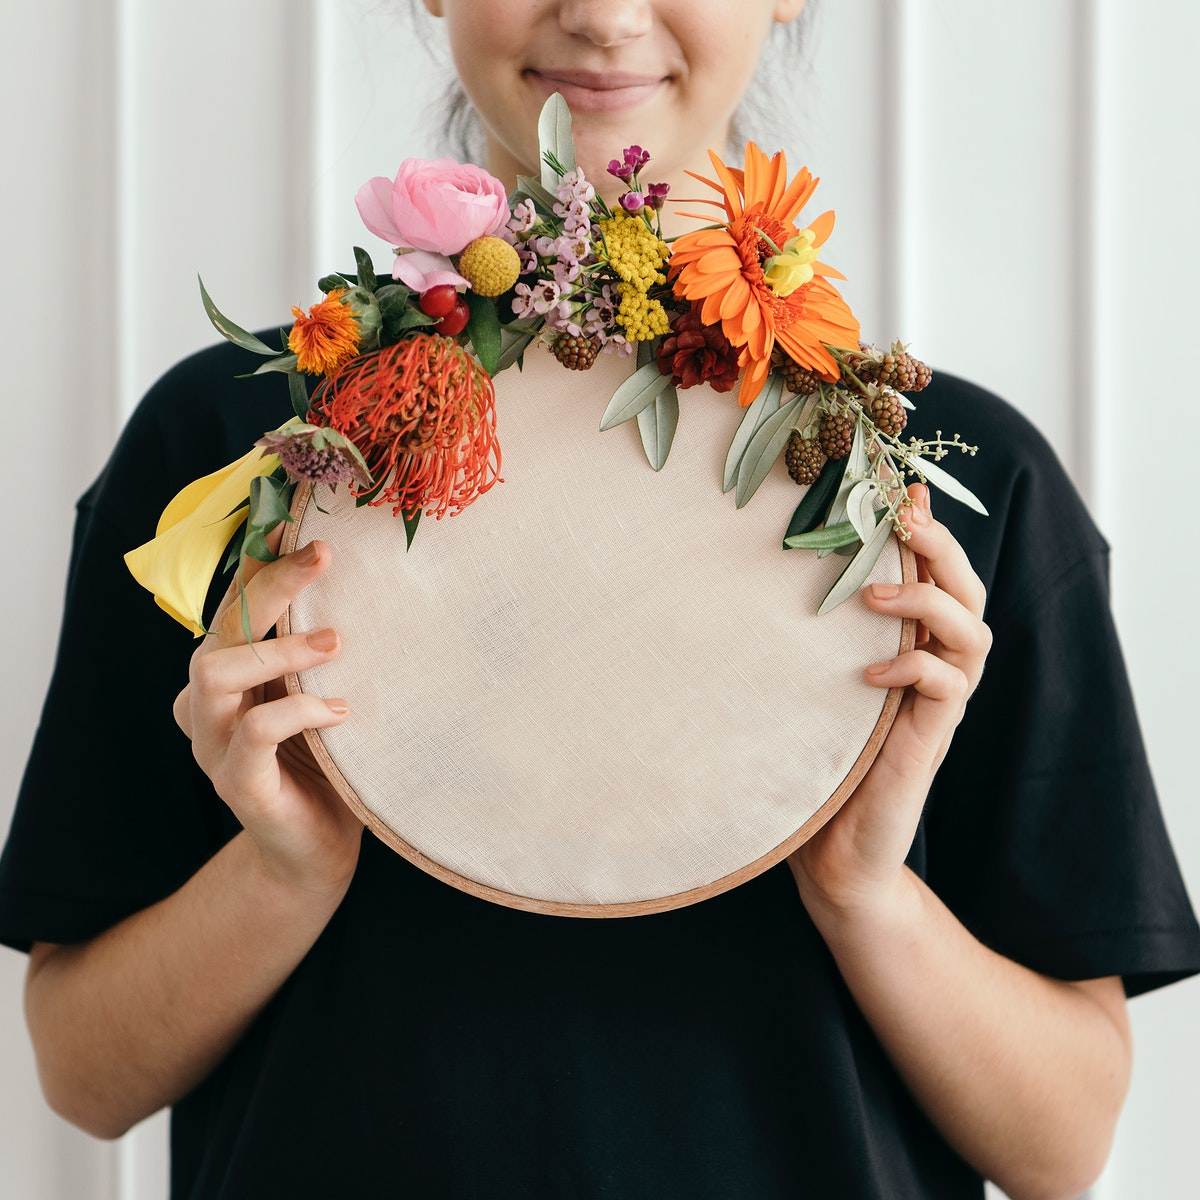 Happy woman holding a wooden frame mockup